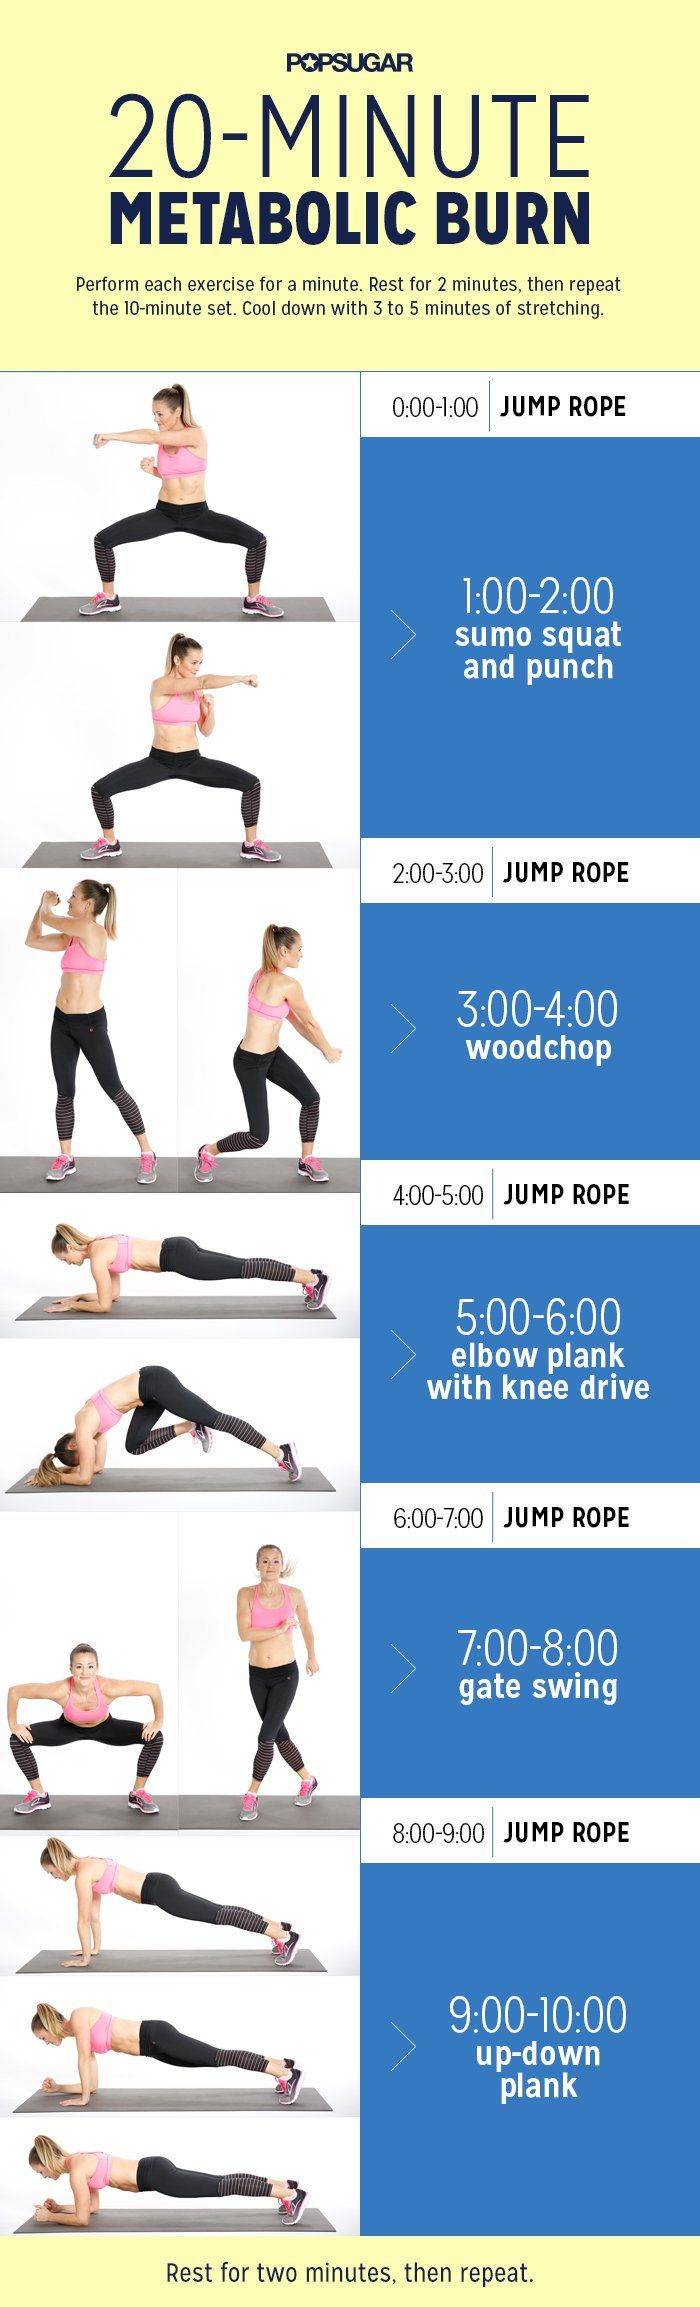 Calorie-Torching Combo: Cardio and Strength Training